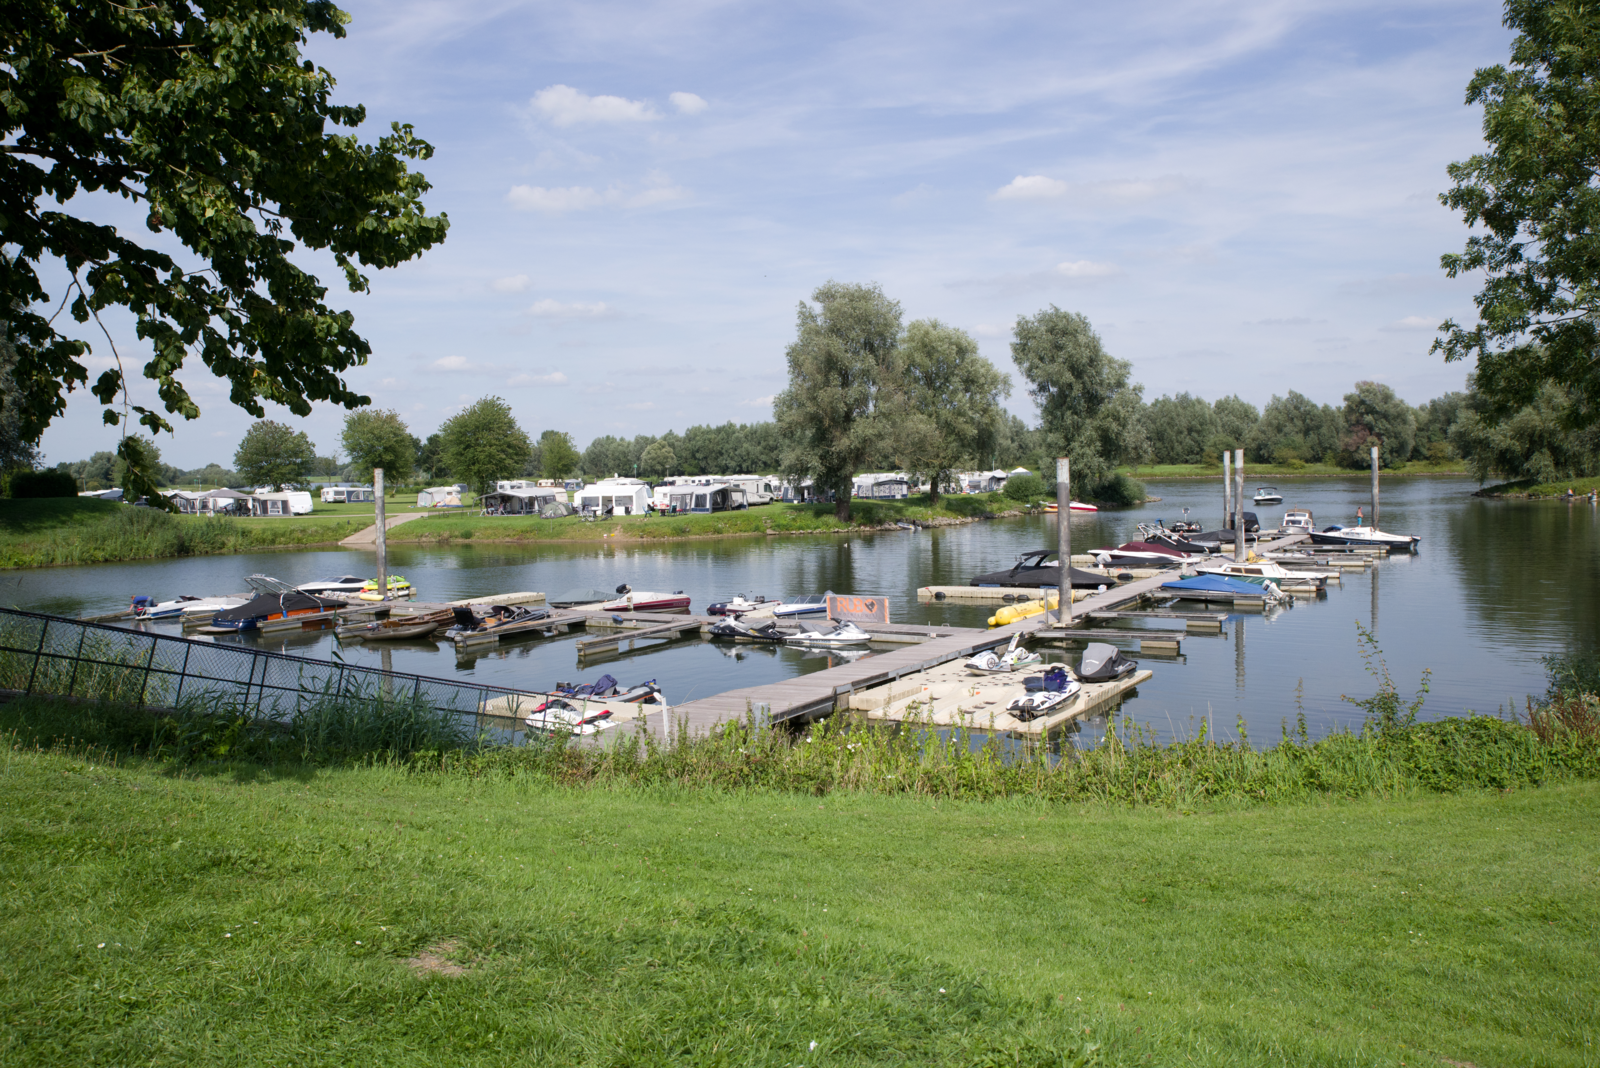 Camping in the Deventer area